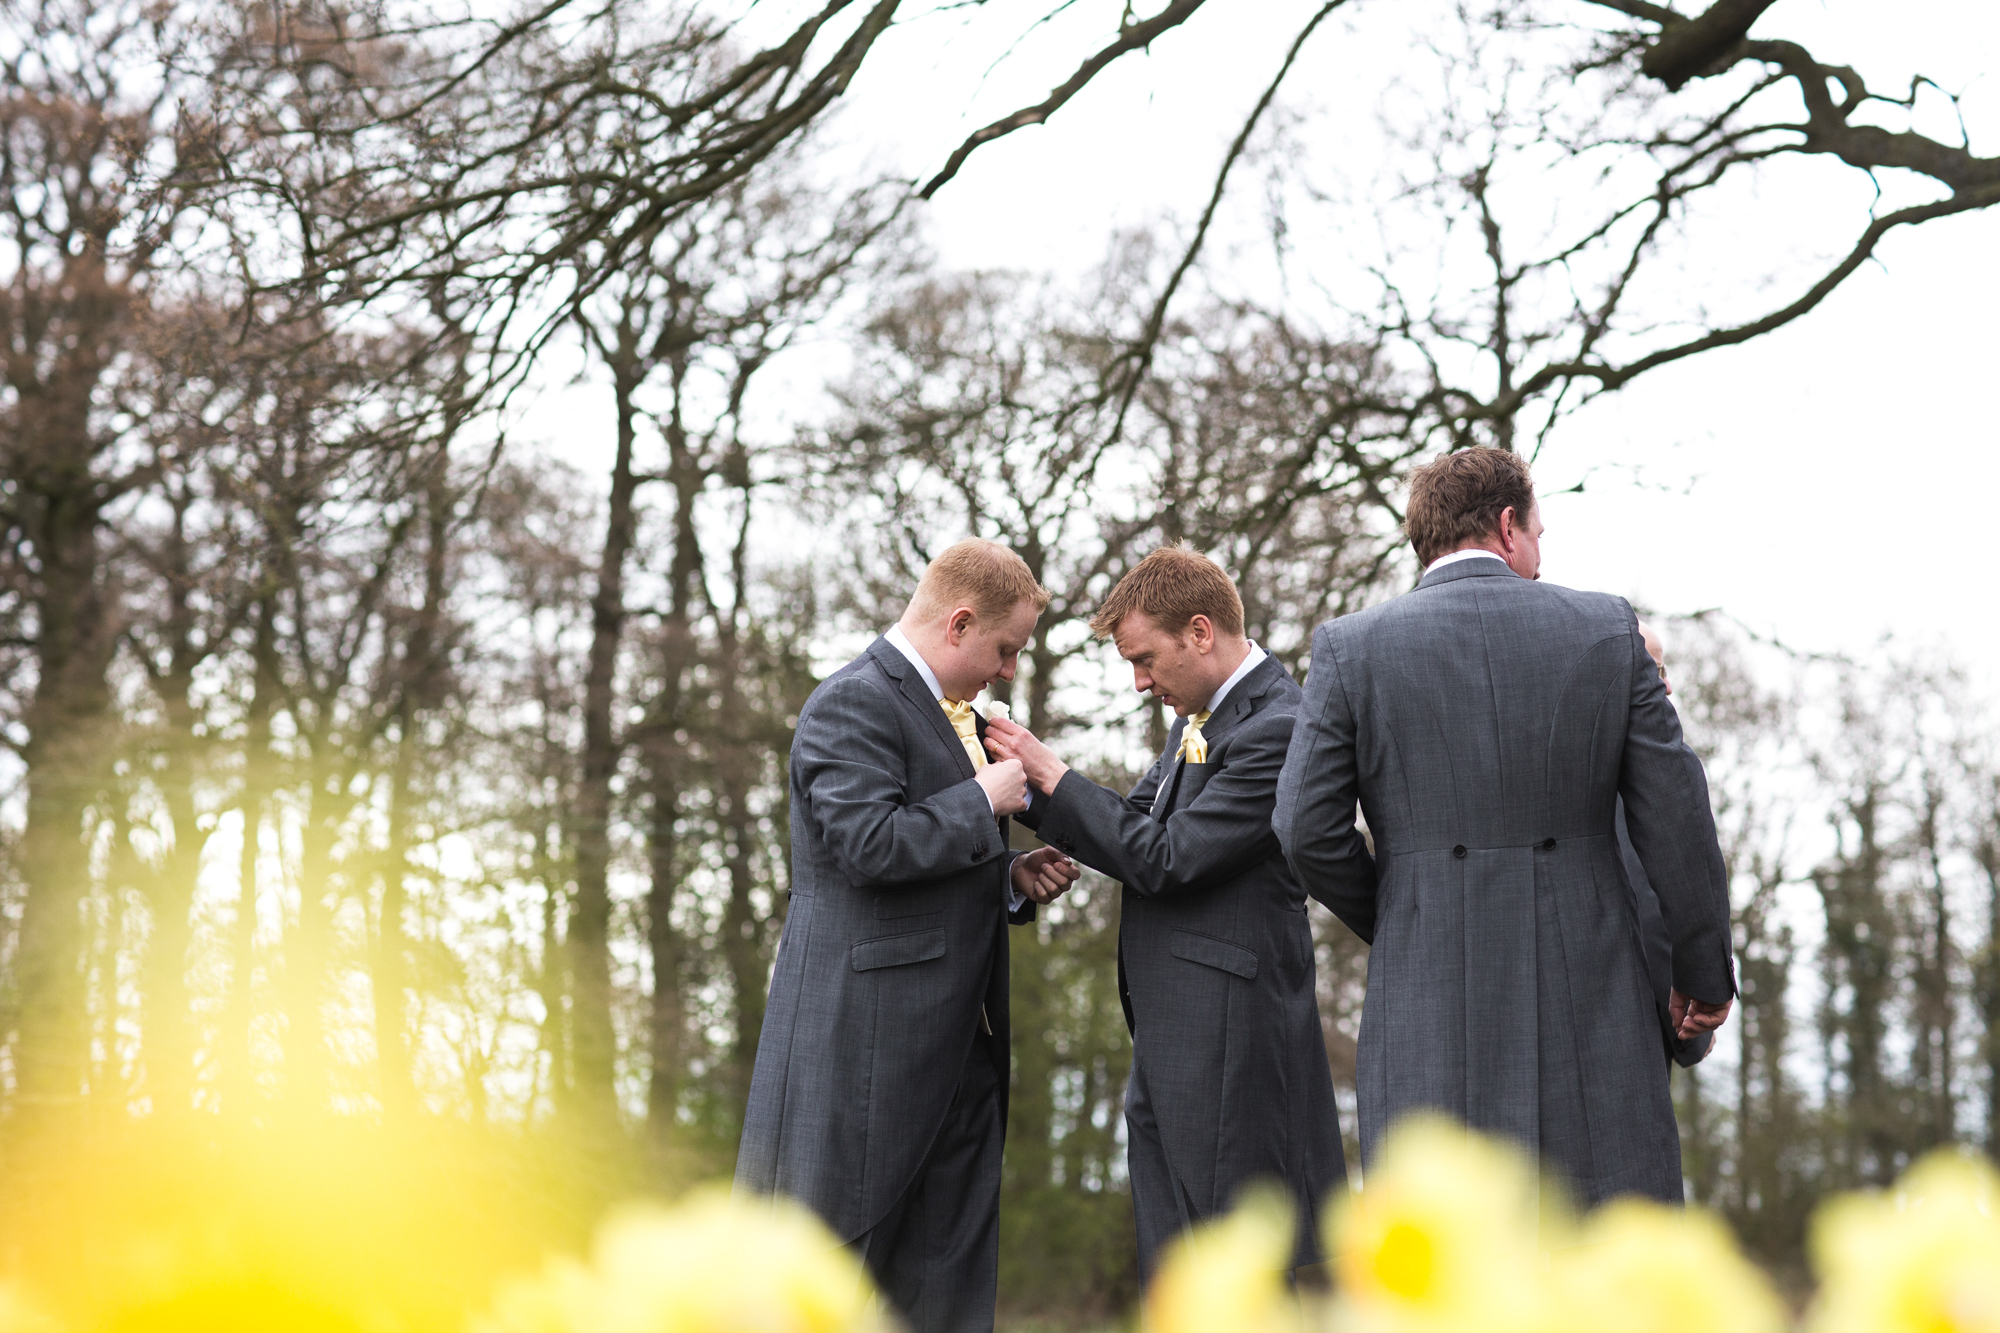 wynyard hall wedding photographer duncan mccall-1009.jpg